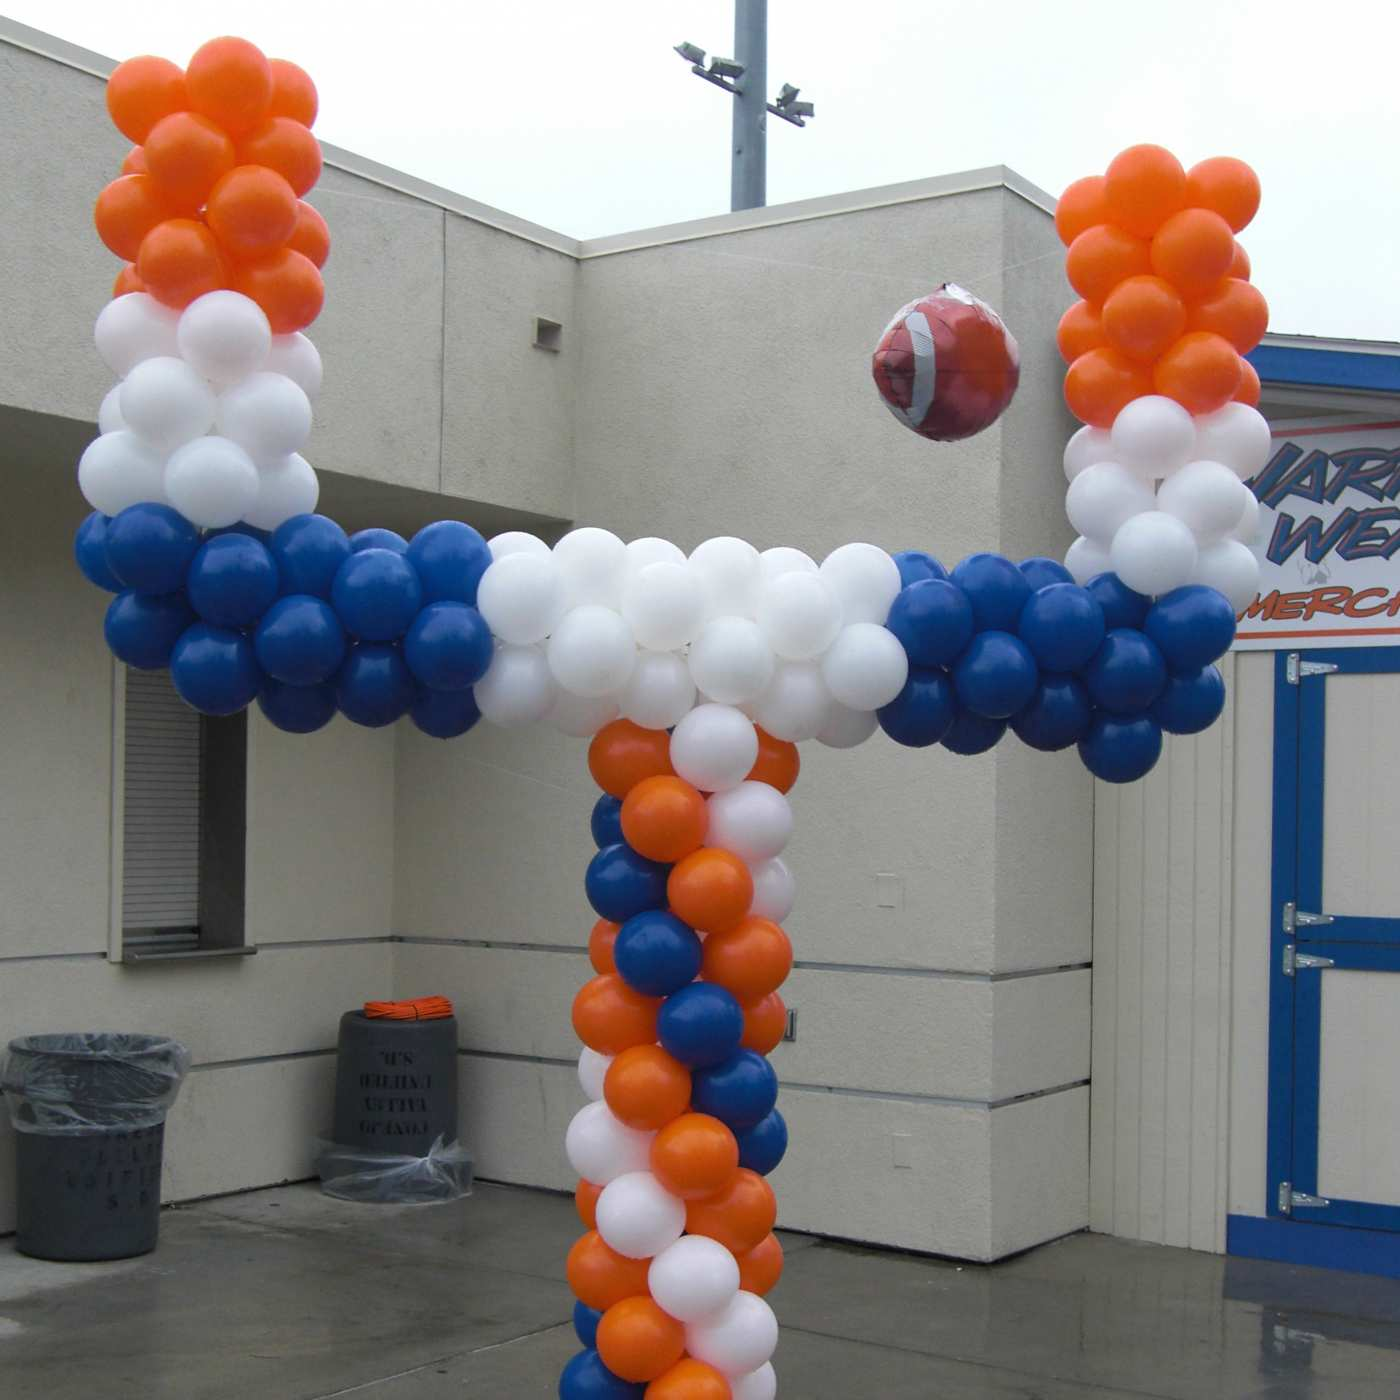 Goalpost balloon sculpture